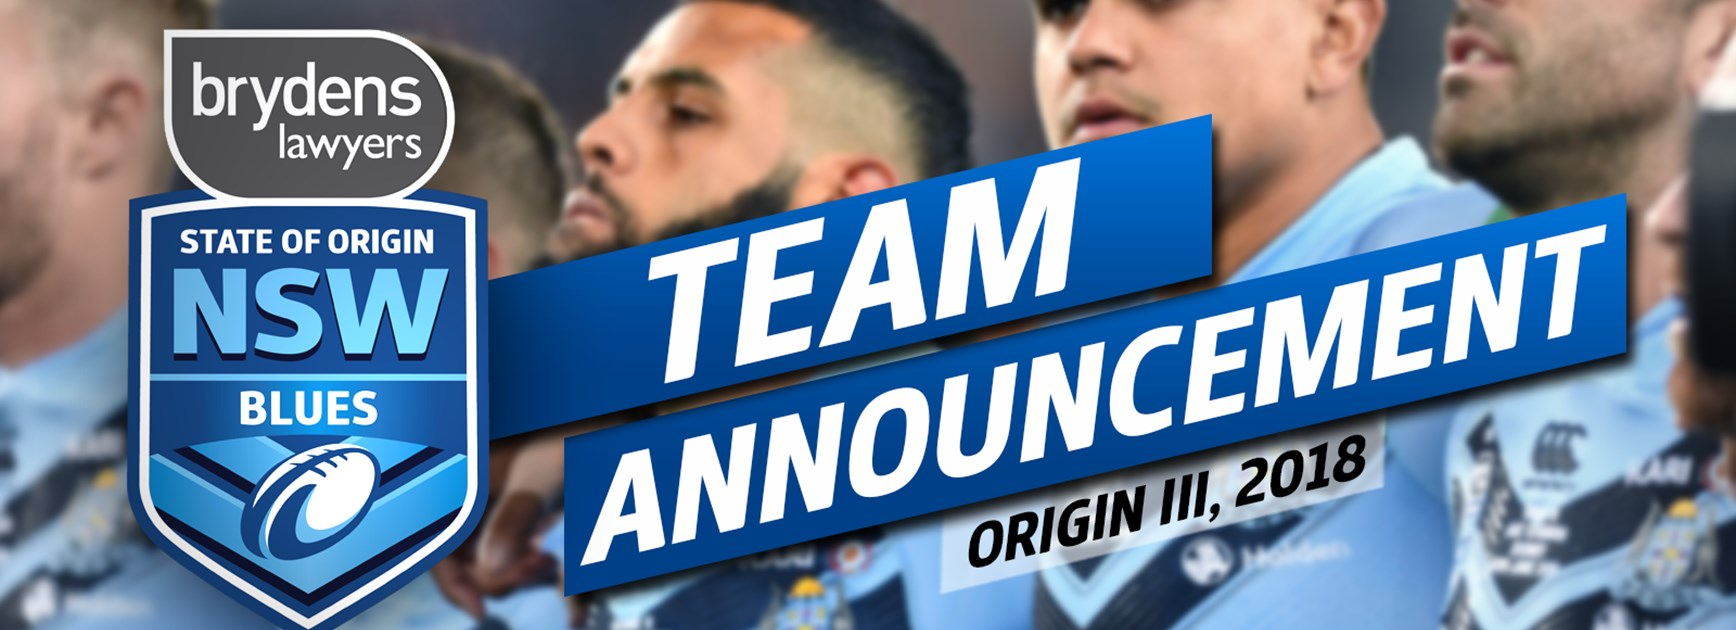 TEAM | Brydens Lawyers NSW Blues